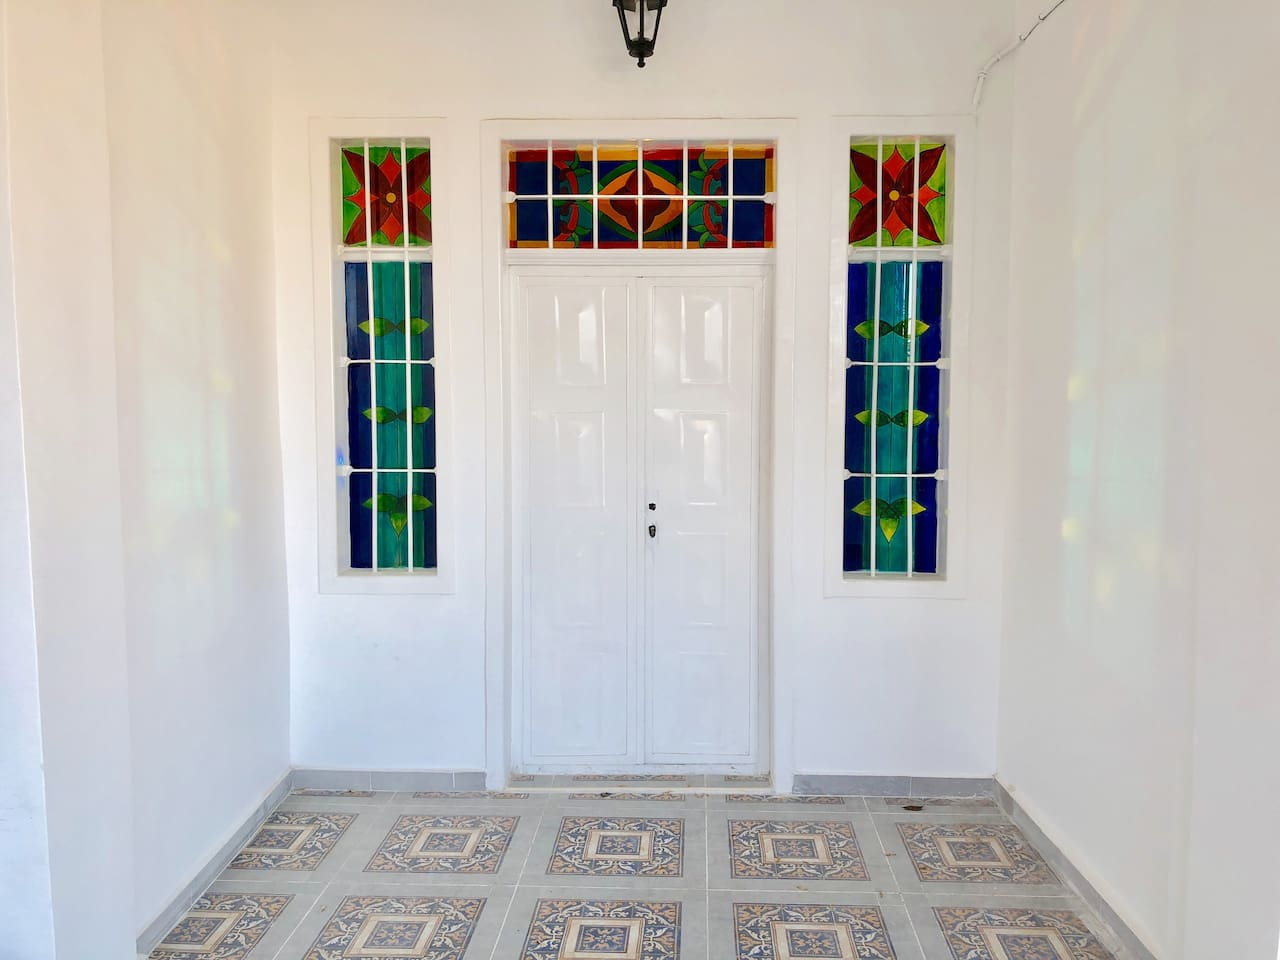 An old hand painted stained glass